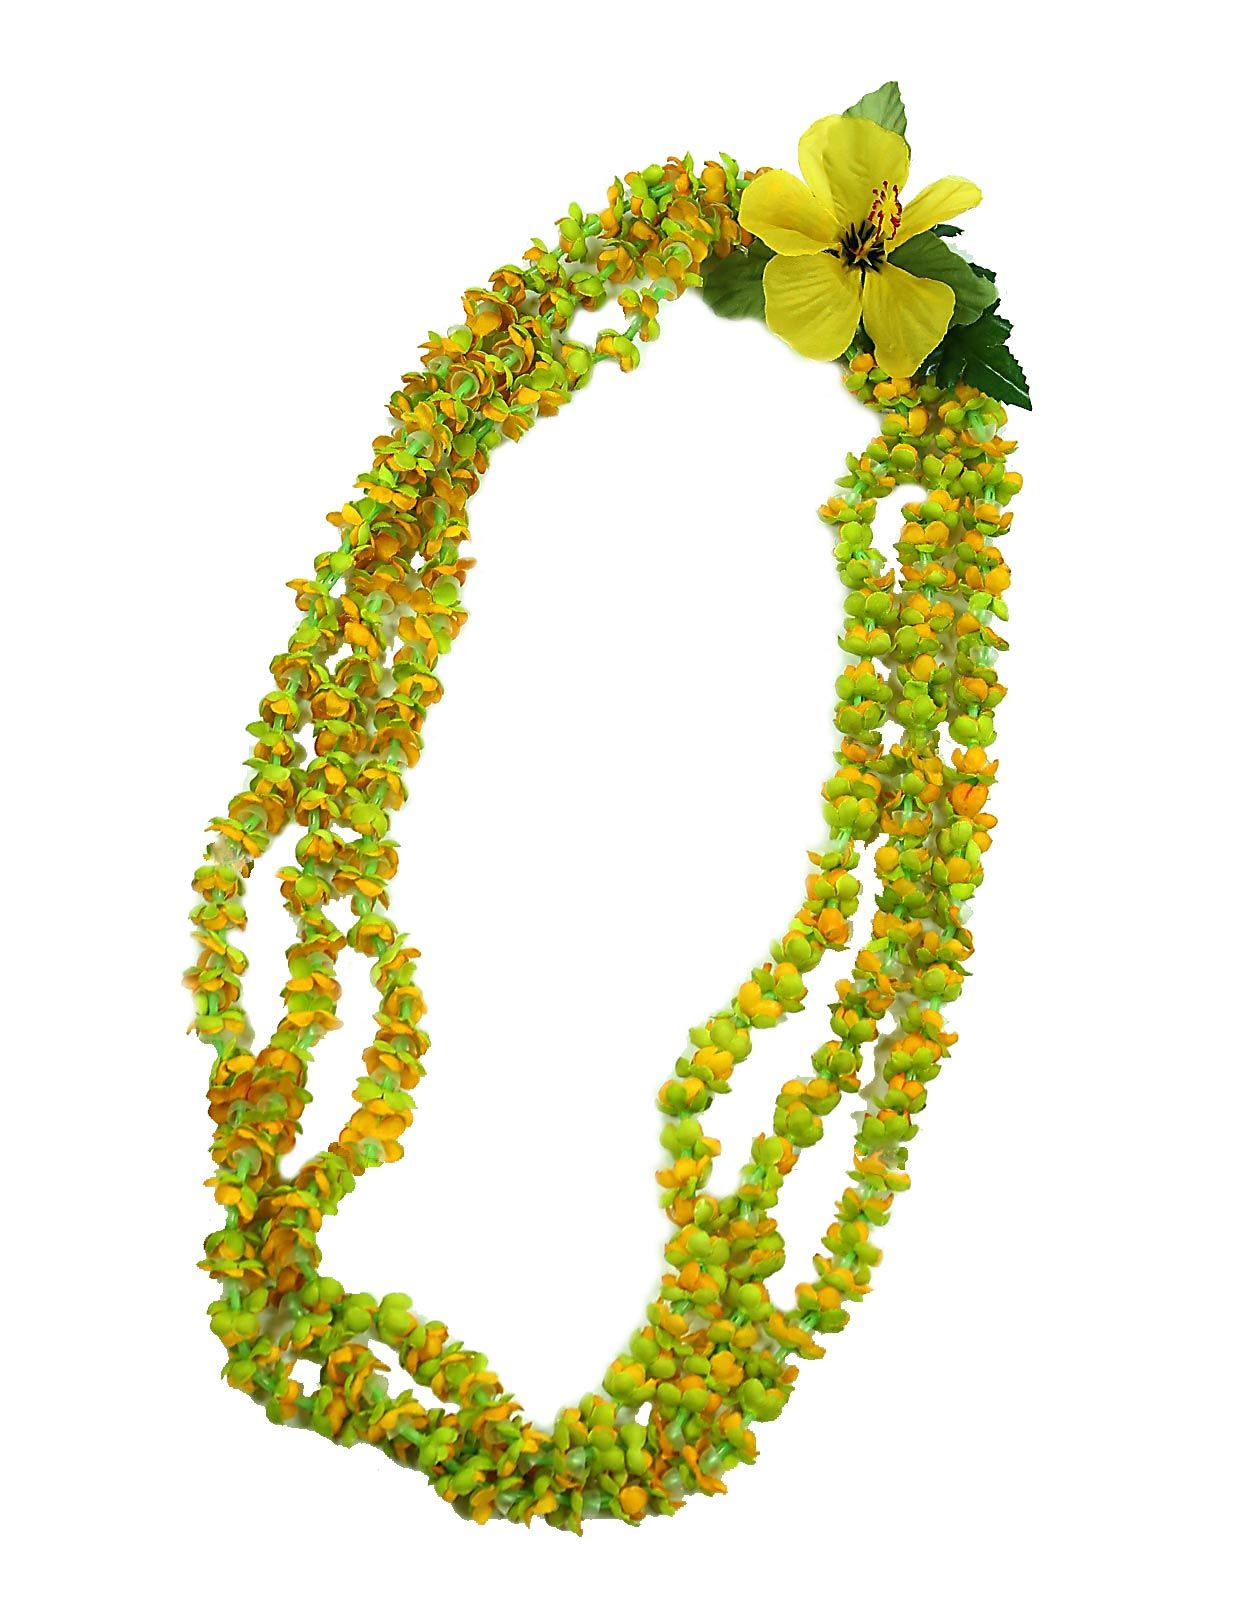 Check out the deal on pakalana triple strand silk lei at shaka time these beautiful flowers are grown in yards and gardens throughout hawaii to make leis and headbands for homecomings visitors and graduations izmirmasajfo Gallery